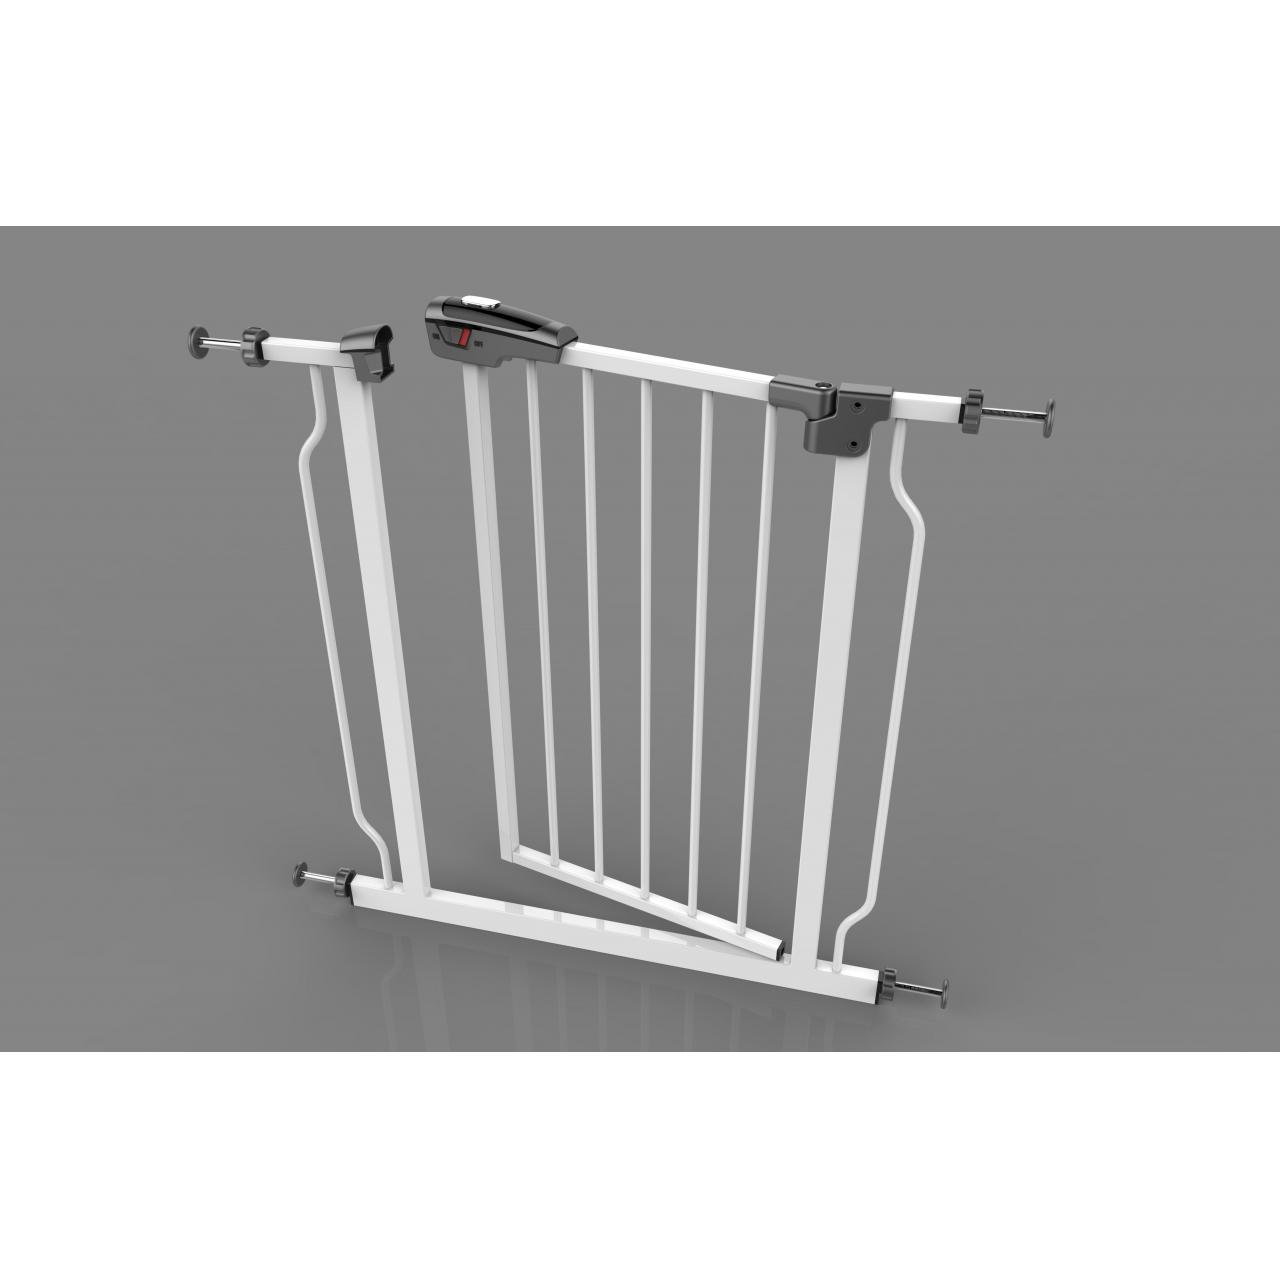 Adjustable Baby Ssafety Gate Manufactures